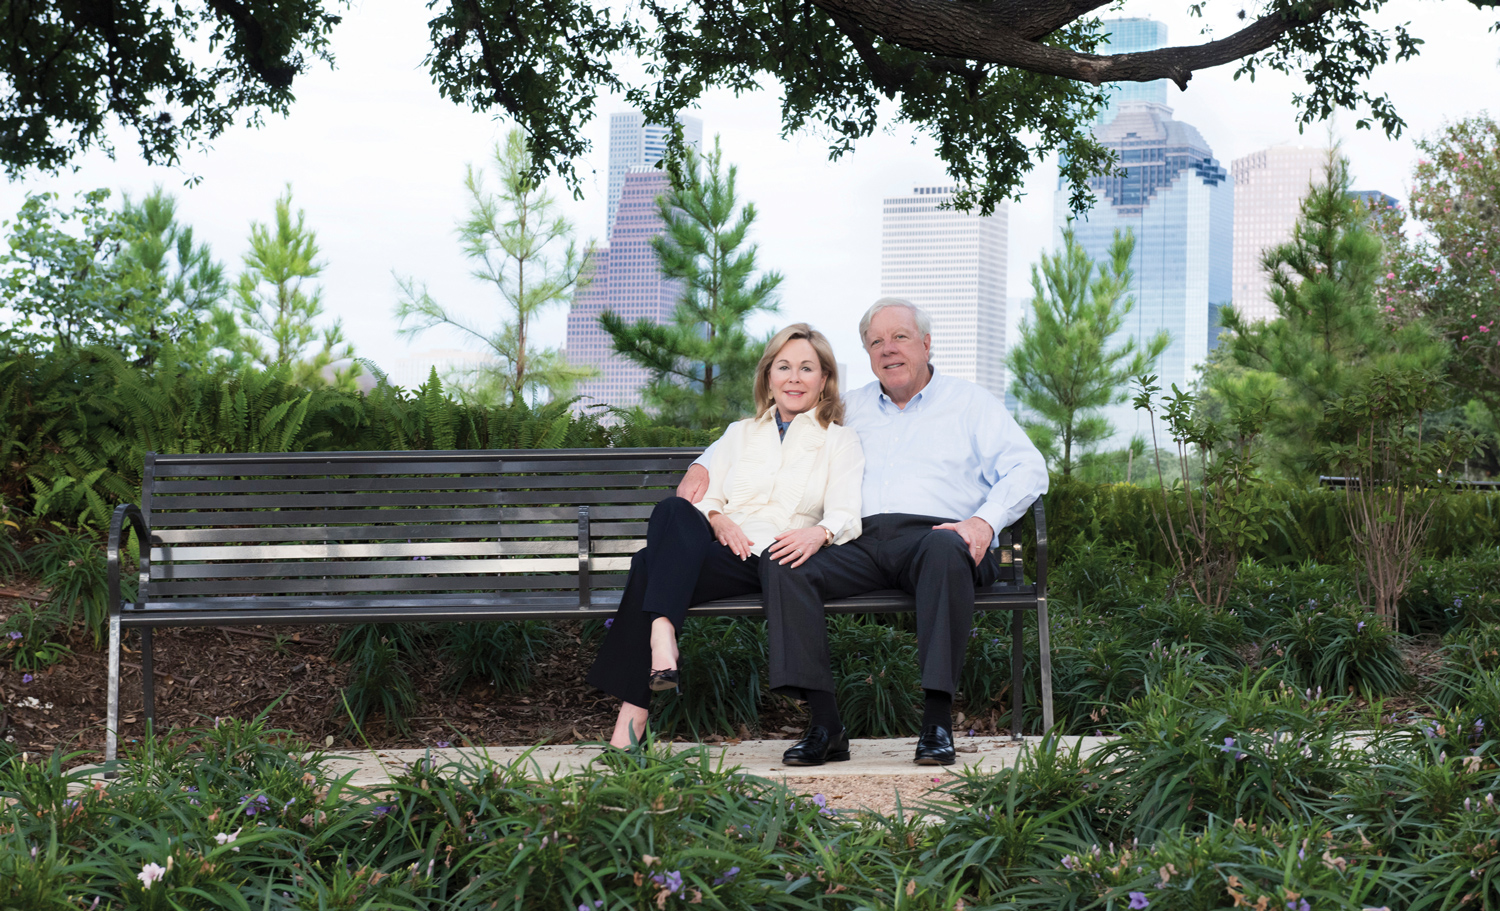 Rich and Nancy Kinder sitting on bench